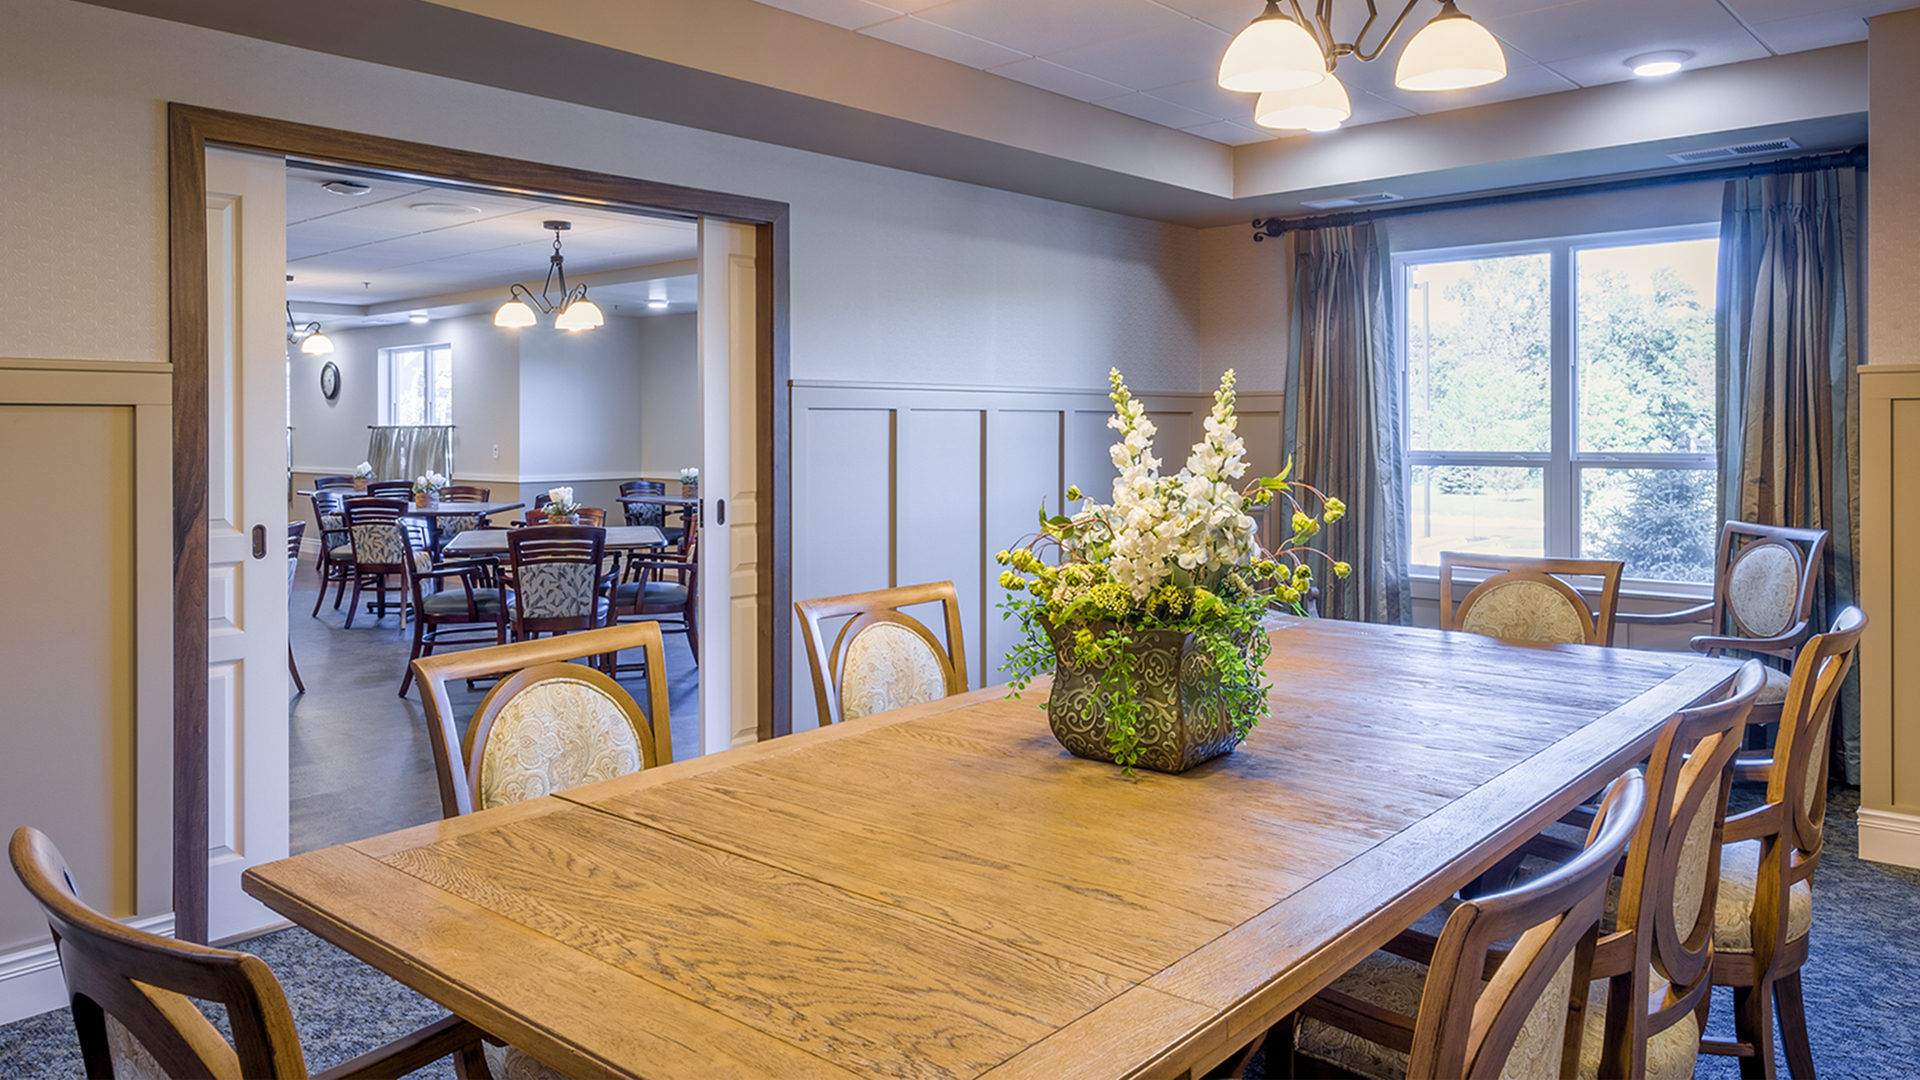 Deephaven Woods Senior Living Housing Interior Private Formal Dining Room